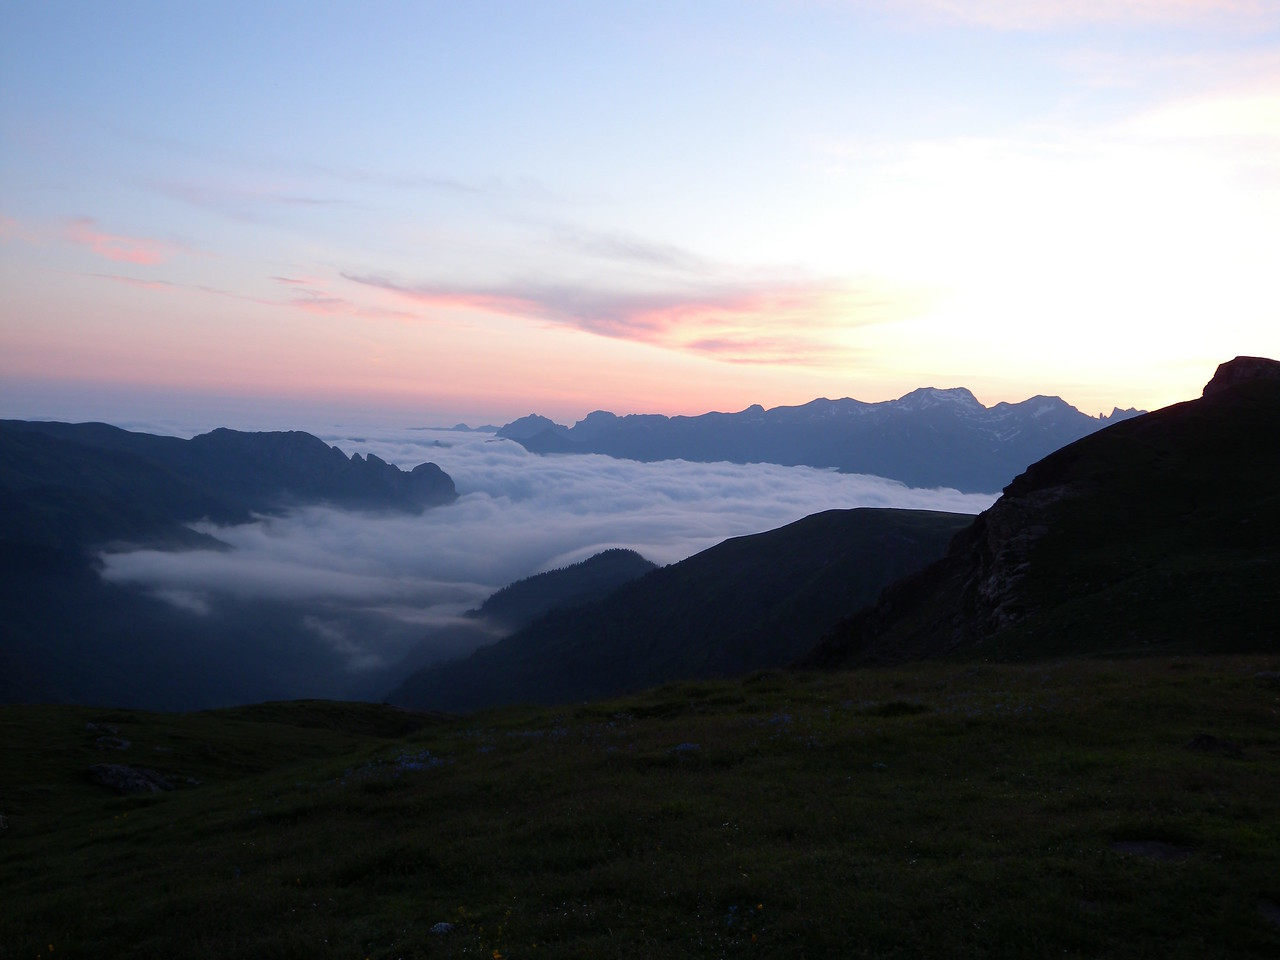 Valley fog from Refuge d'Arlet